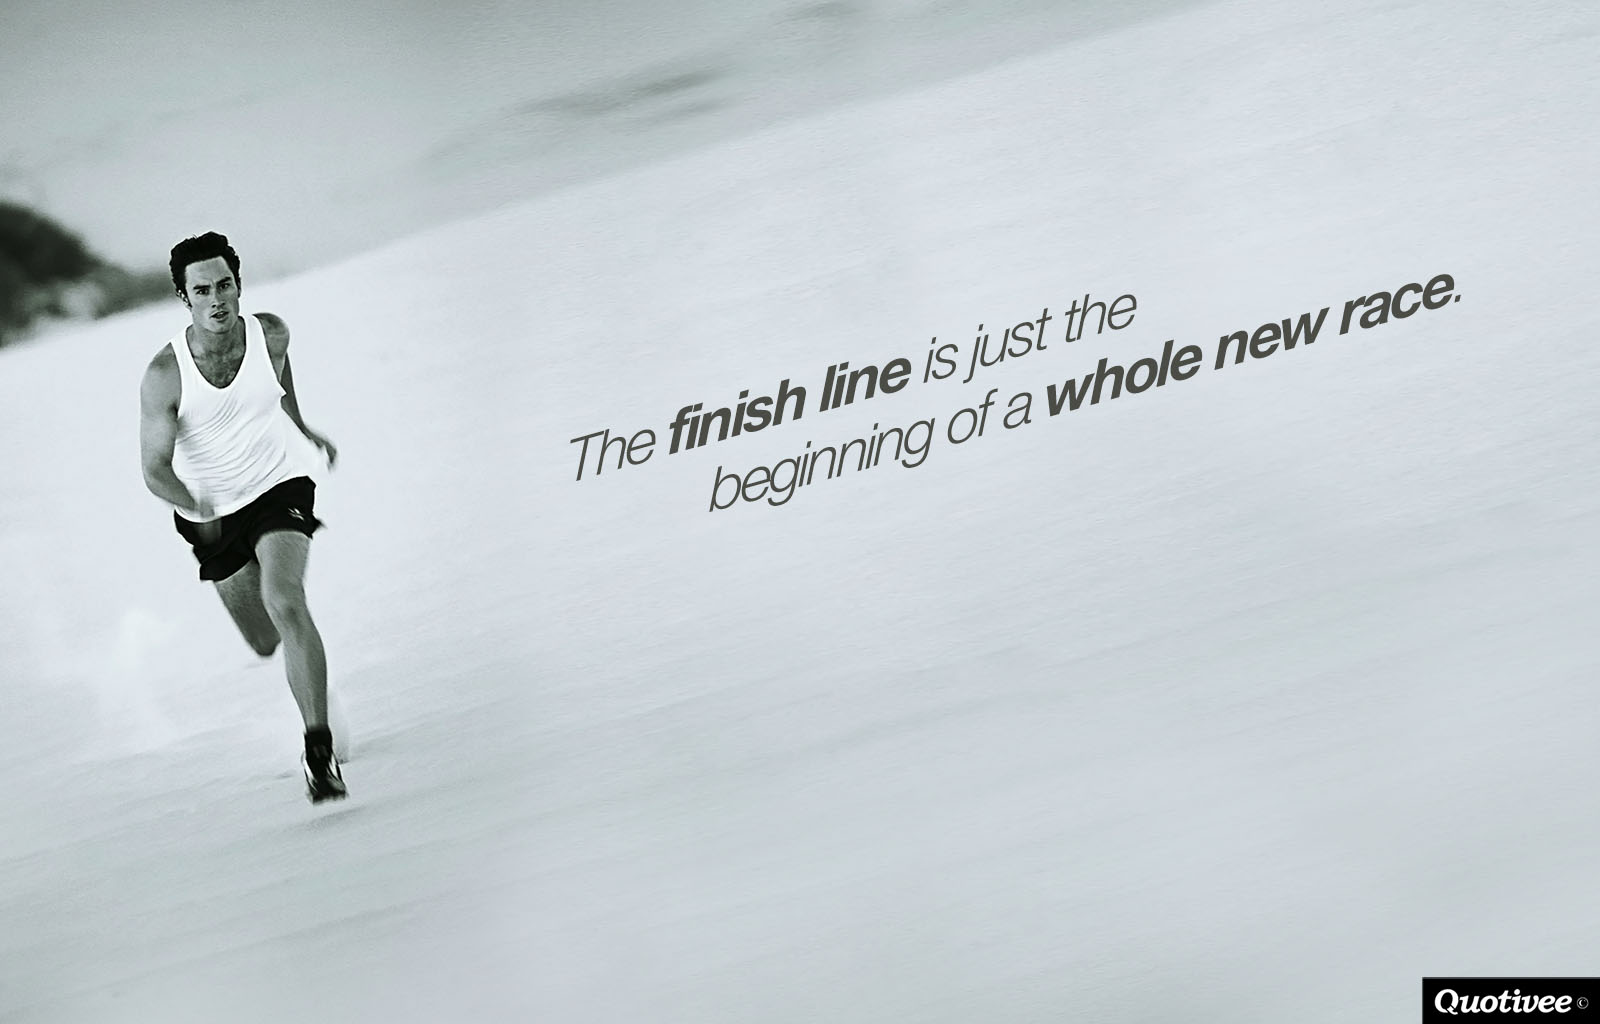 Motivational Quotes Wallpaper Download For Mobile The Finish Line Inspirational Quotes Quotivee